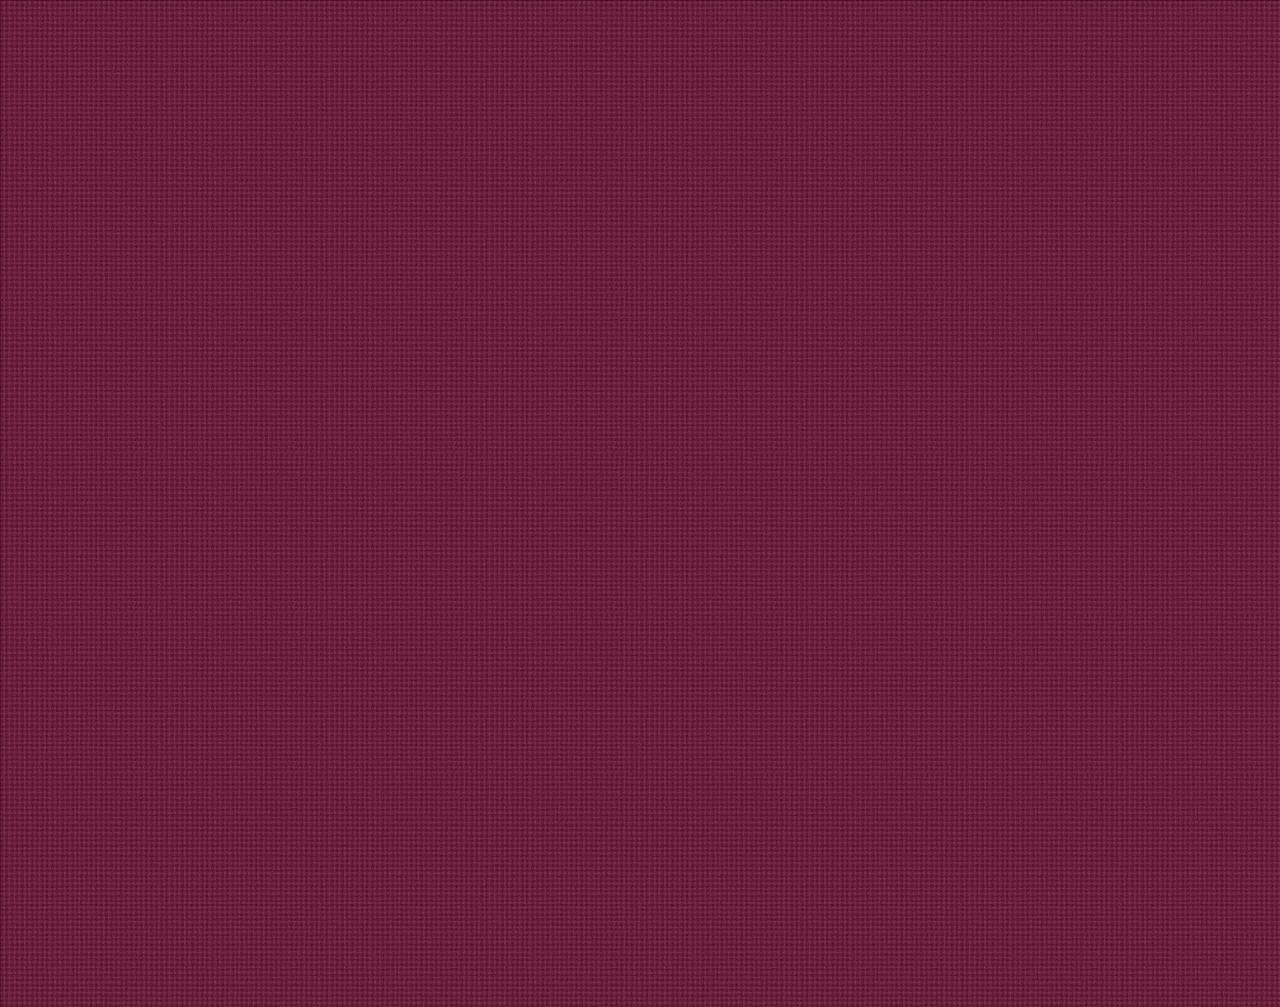 Free coloring pages of maroon burgundy for Burgundy wallpaper